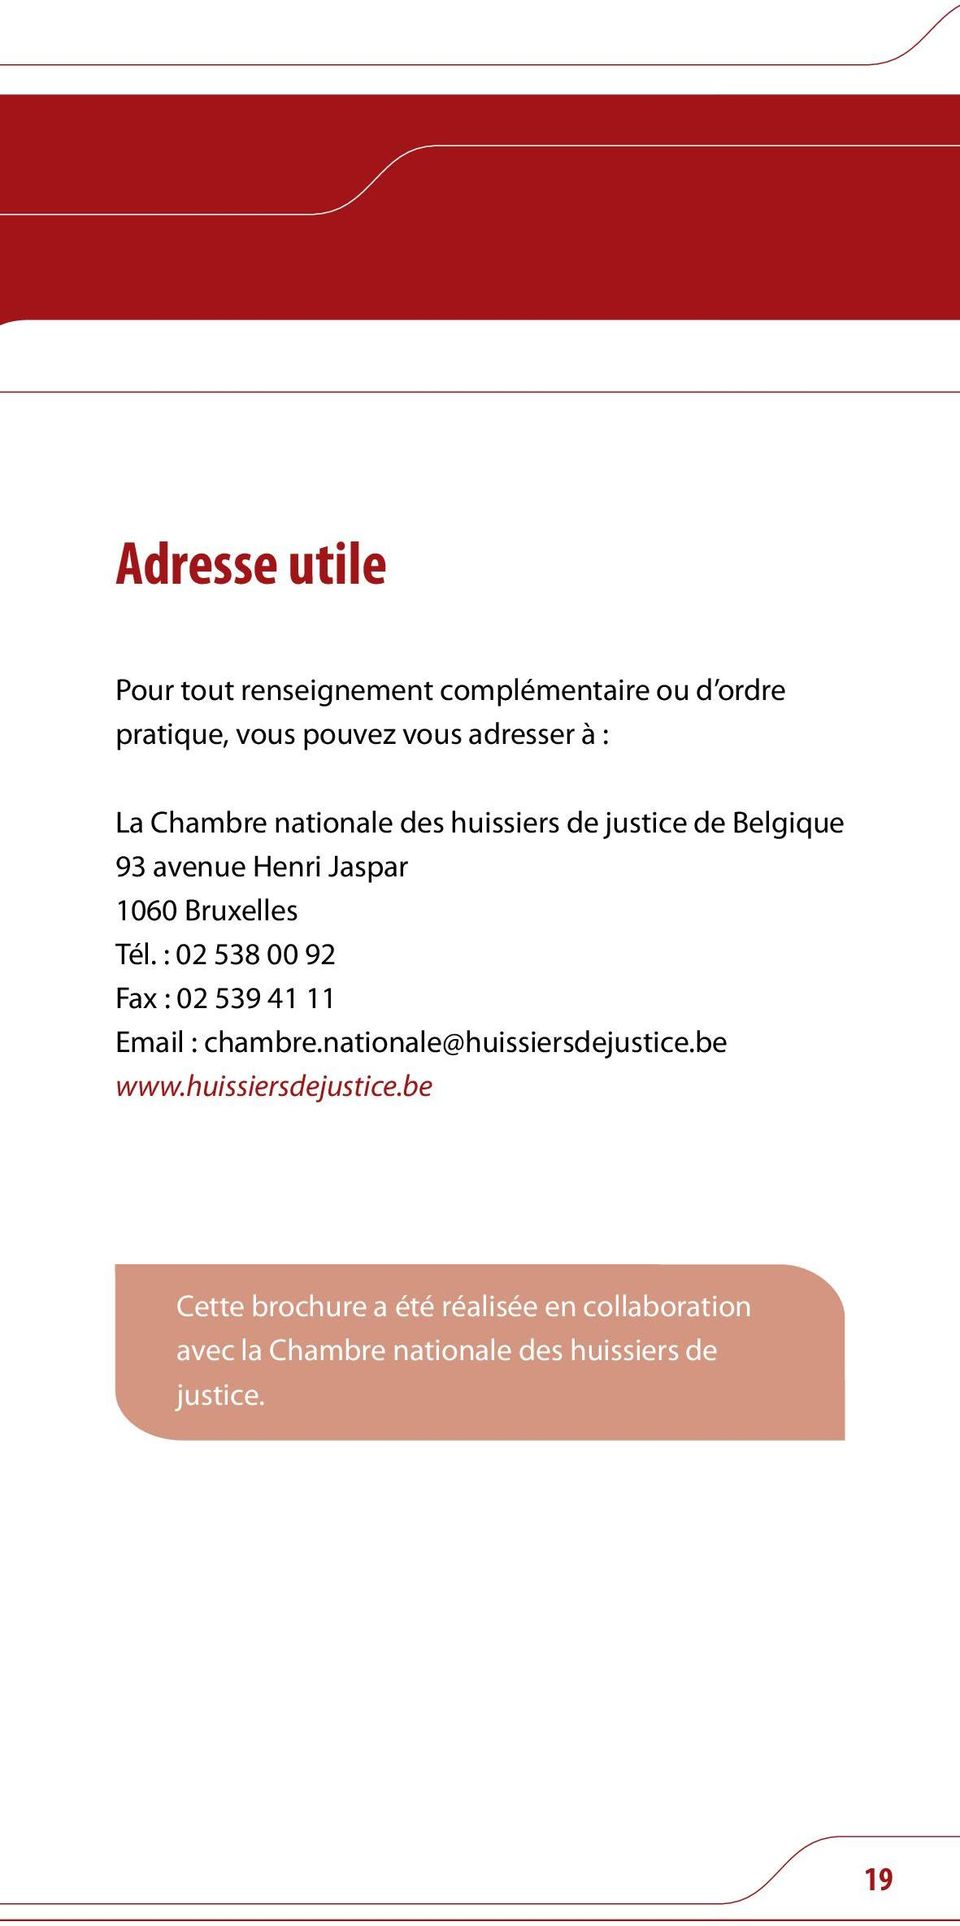 : 02 538 00 92 Fax : 02 539 41 11 Email : chambre.nationale@huissiersdejustice.be www.